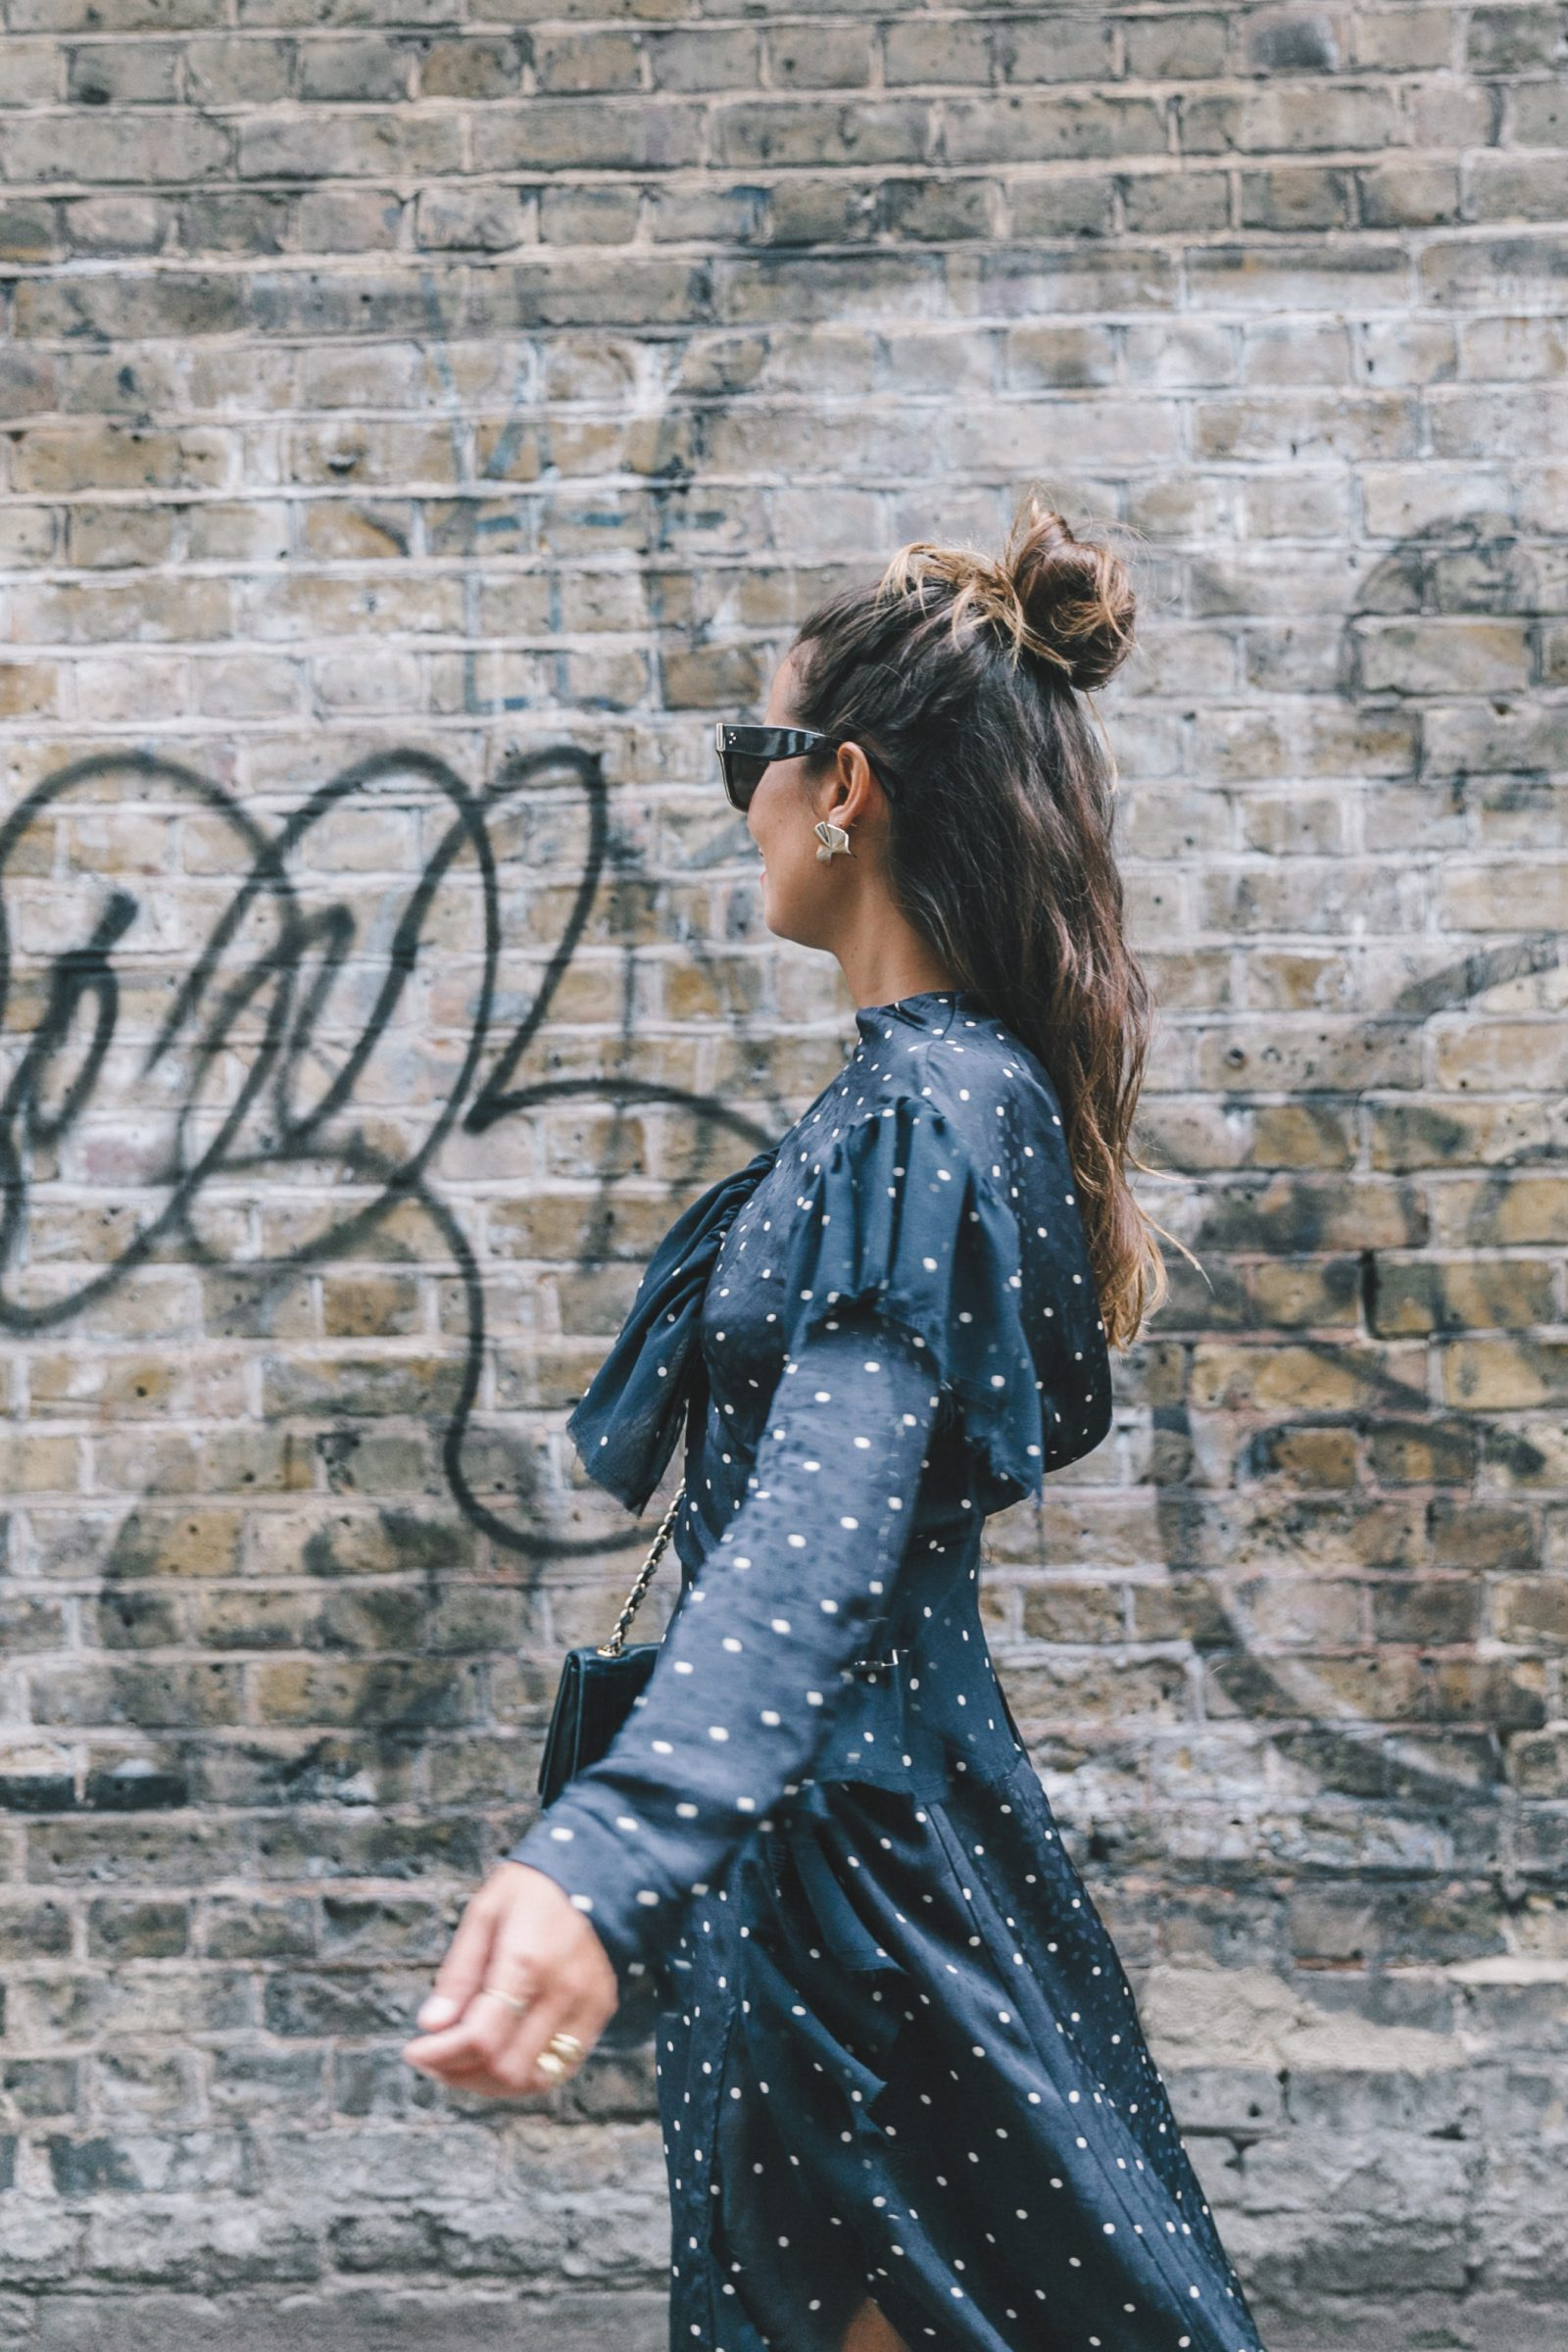 lfw-london_fashion_week_ss17-street_style-outfits-collage_vintage-vintage-topshop_unique-polka_dot_dress-white_mules-topshop_boutique-adenorah-3